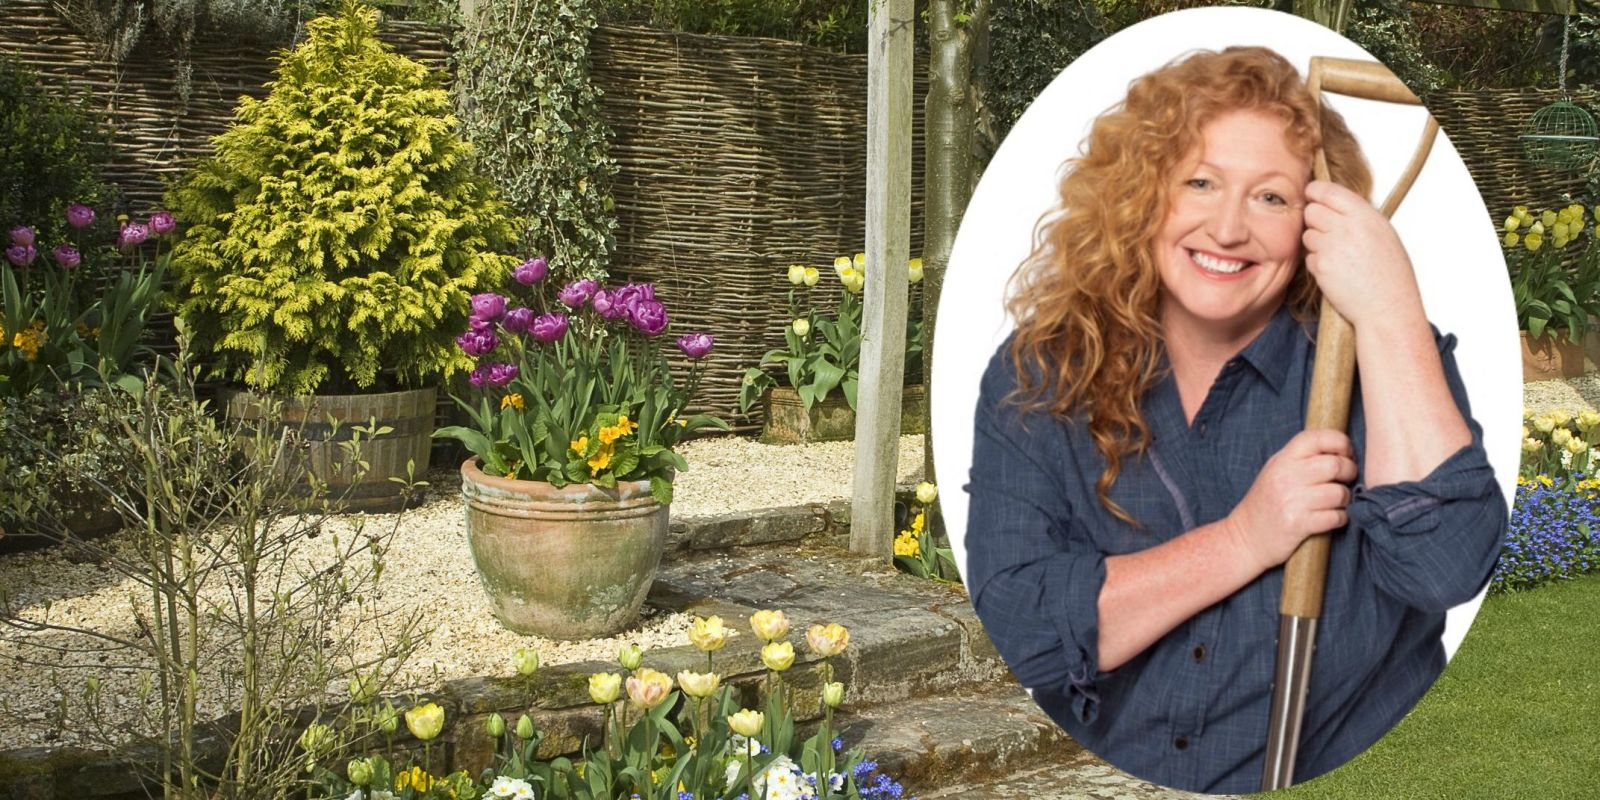 Charlie Dimmock The More People I Can Encourage To Get